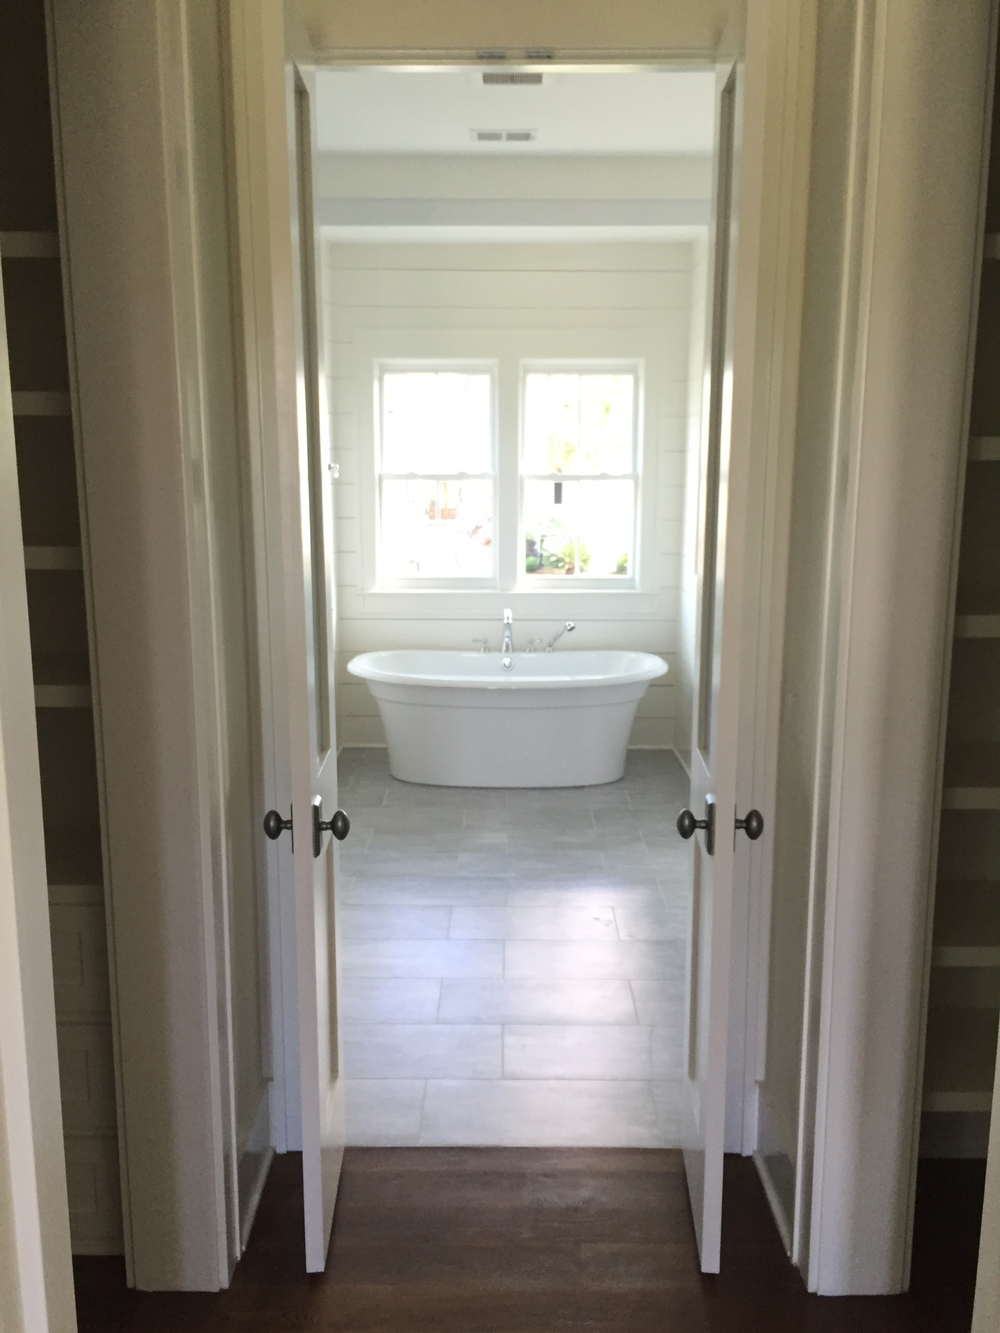 tub from bedroom.JPG